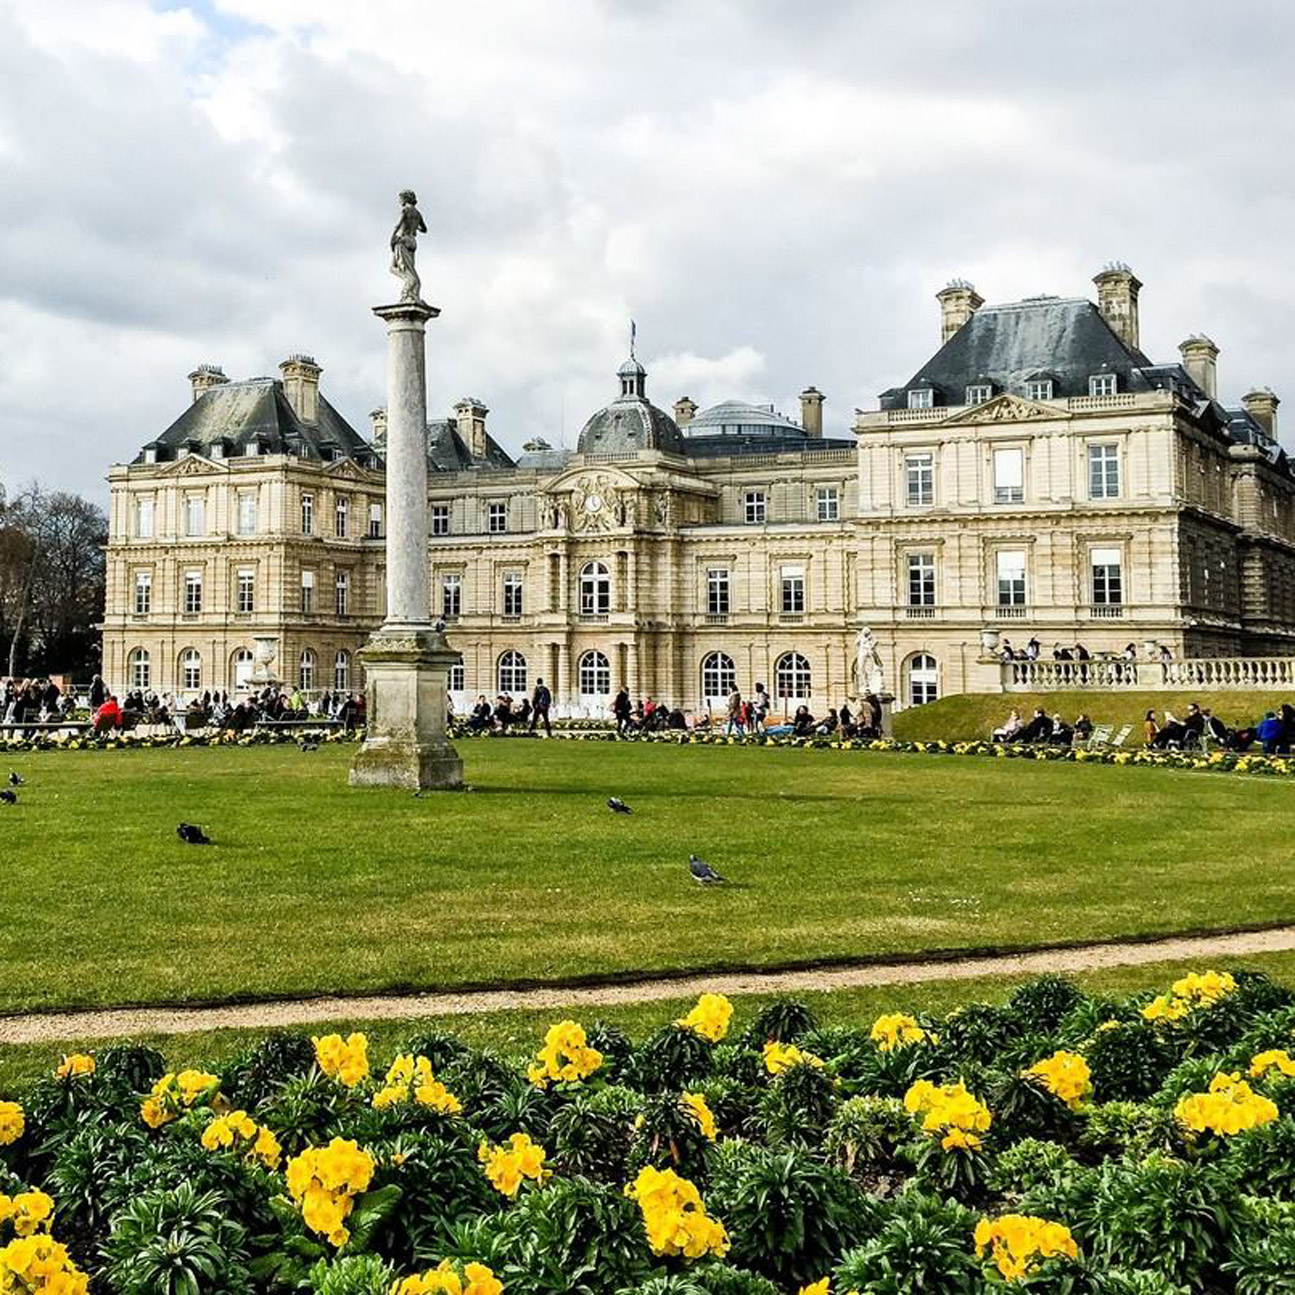 Alan Riding's Luxembourg Gardens